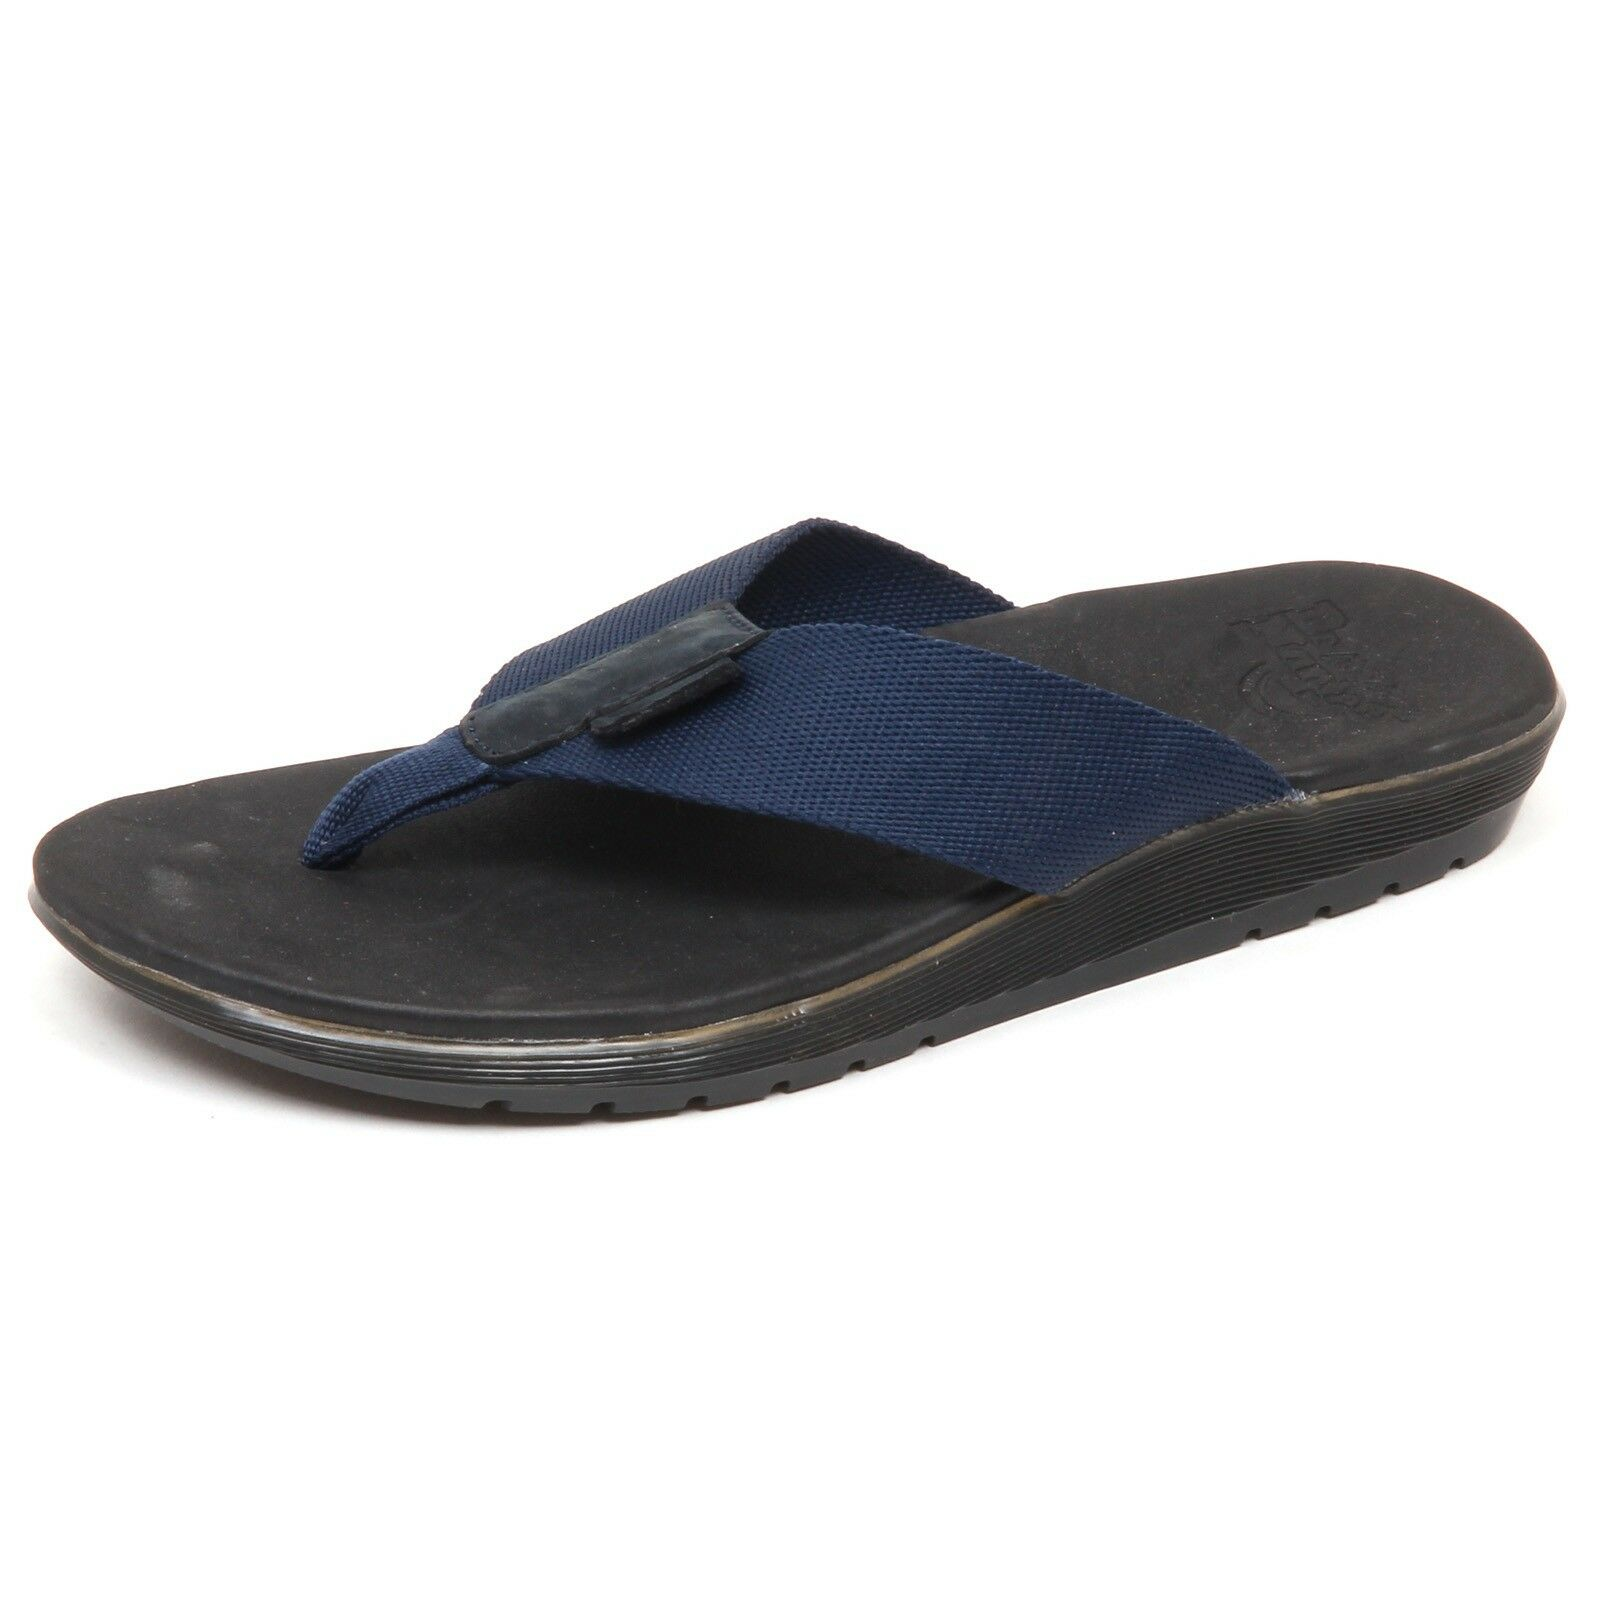 D9794 (without box) infradito uomo blu DR. MARTENS MANA flip flop shoe man